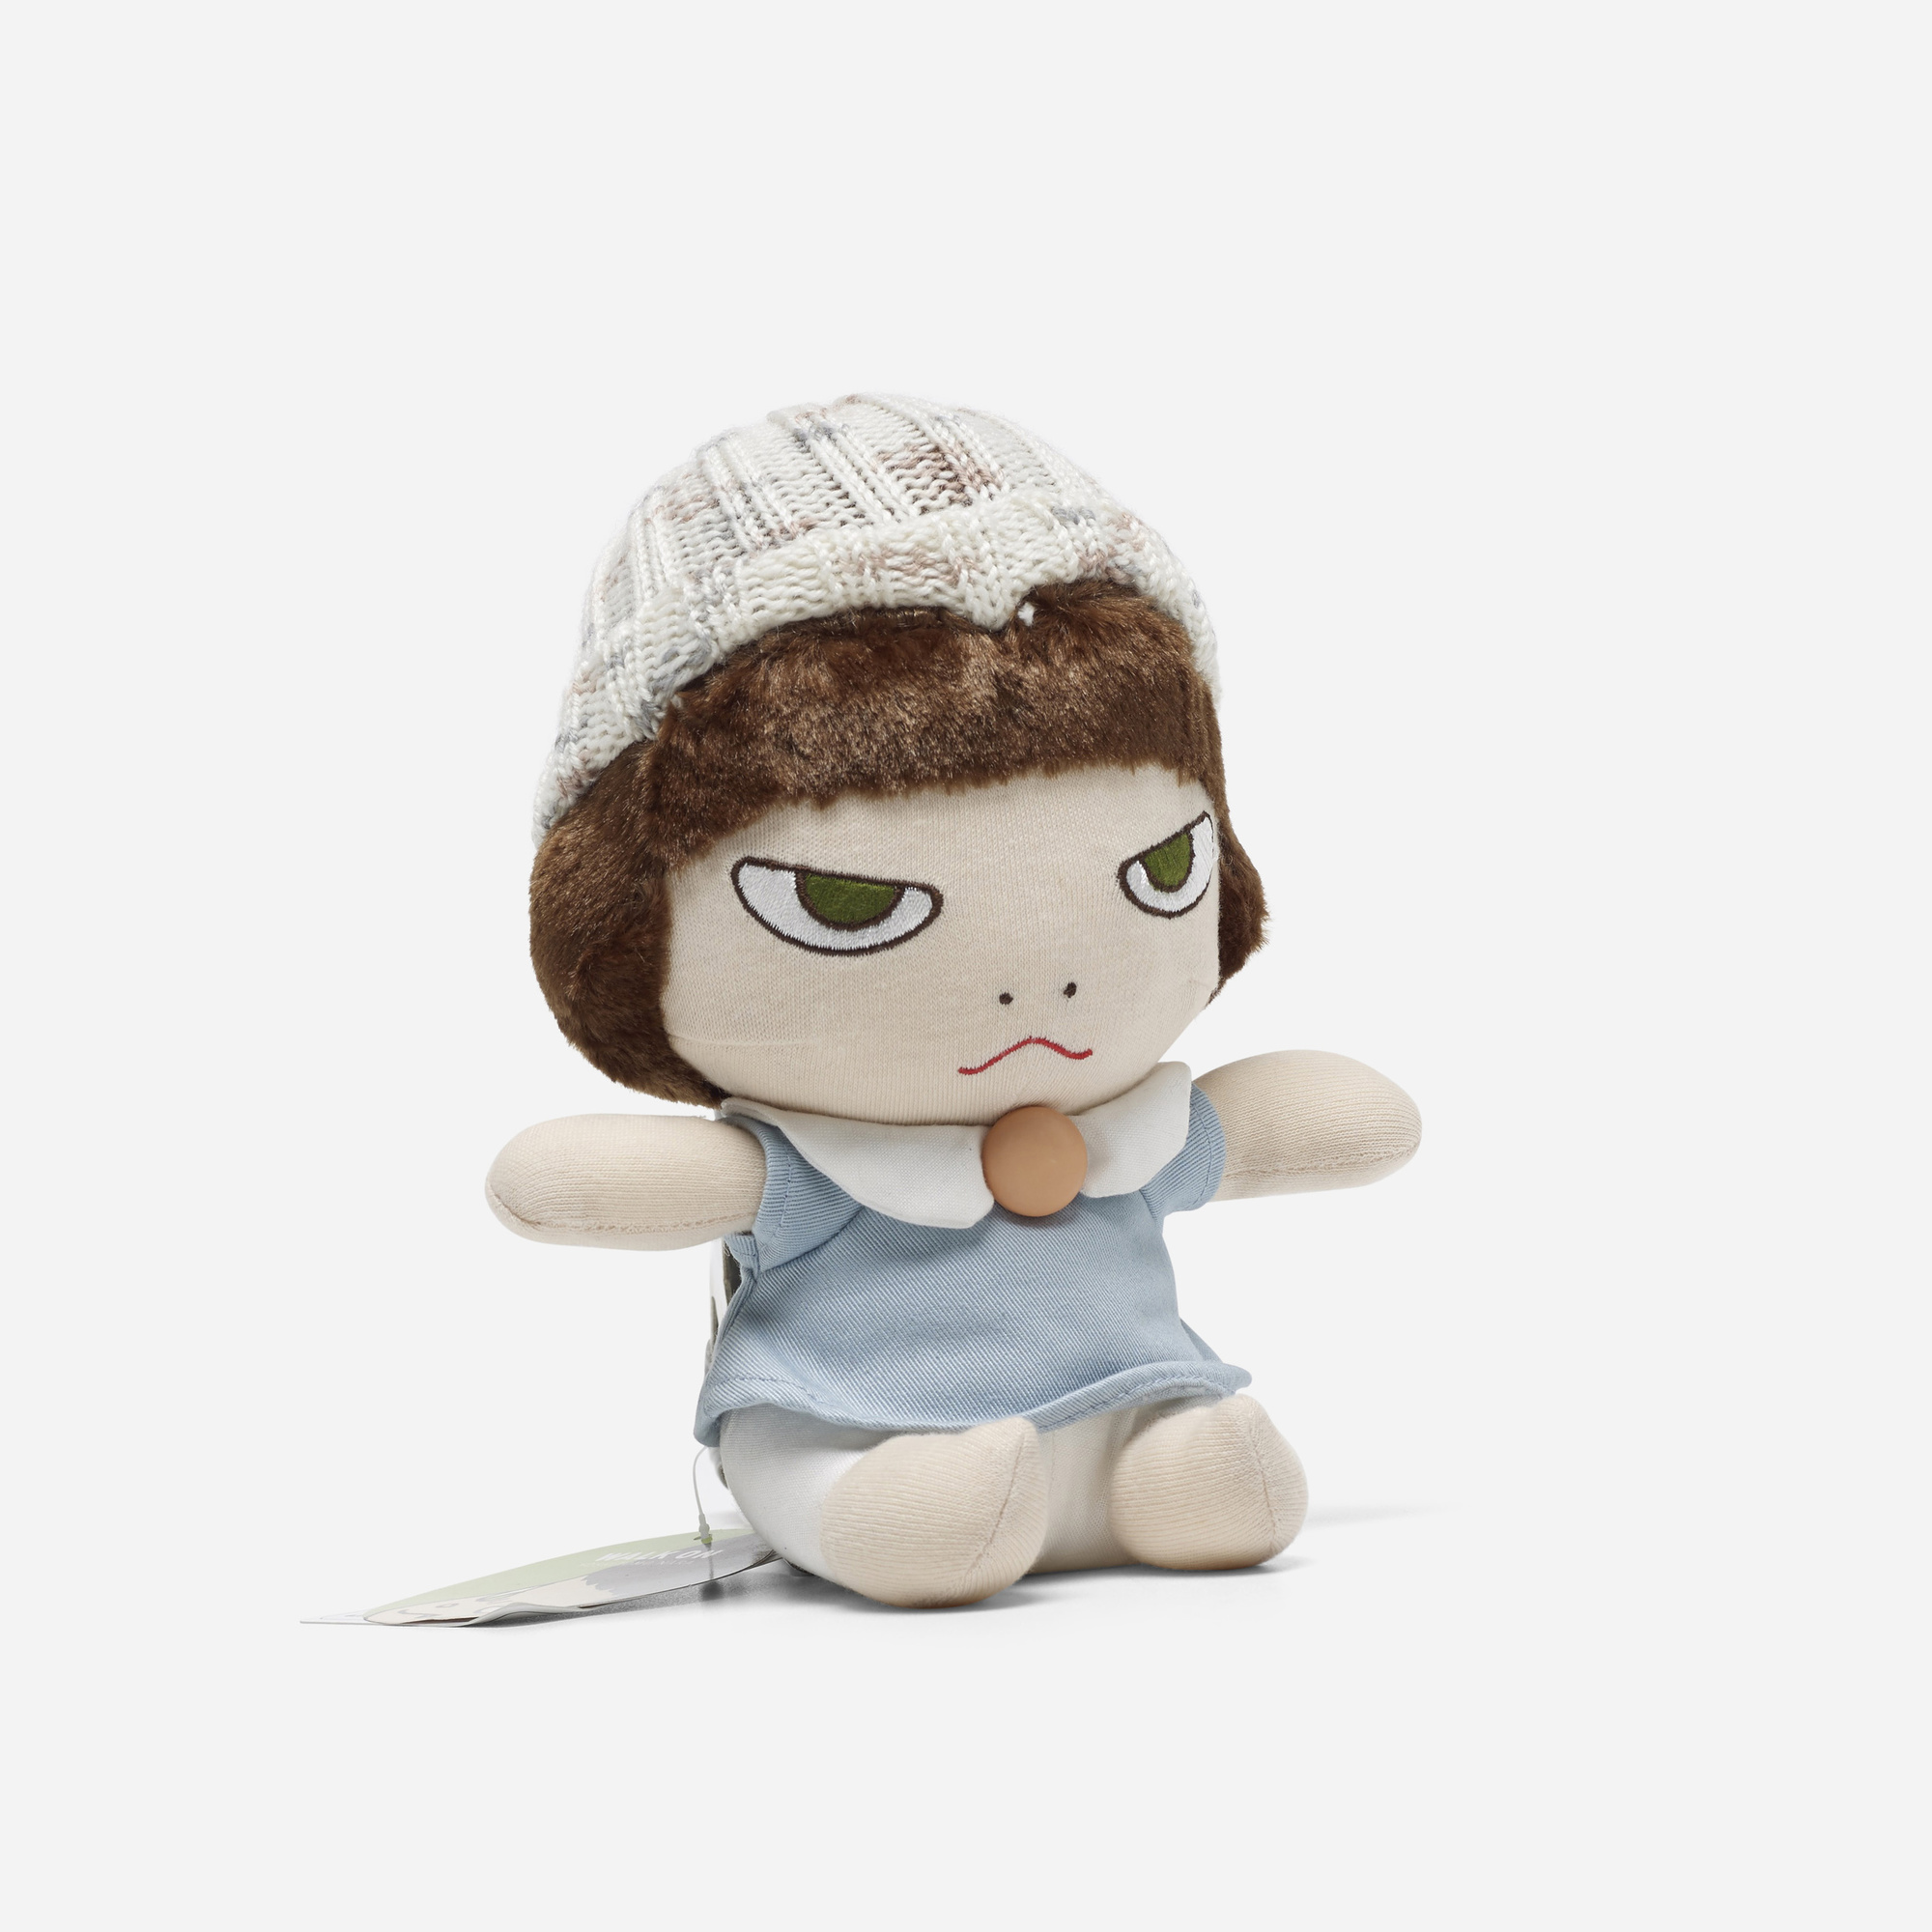 628: Yoshitomo Nara / Walk On doll (1 of 3)